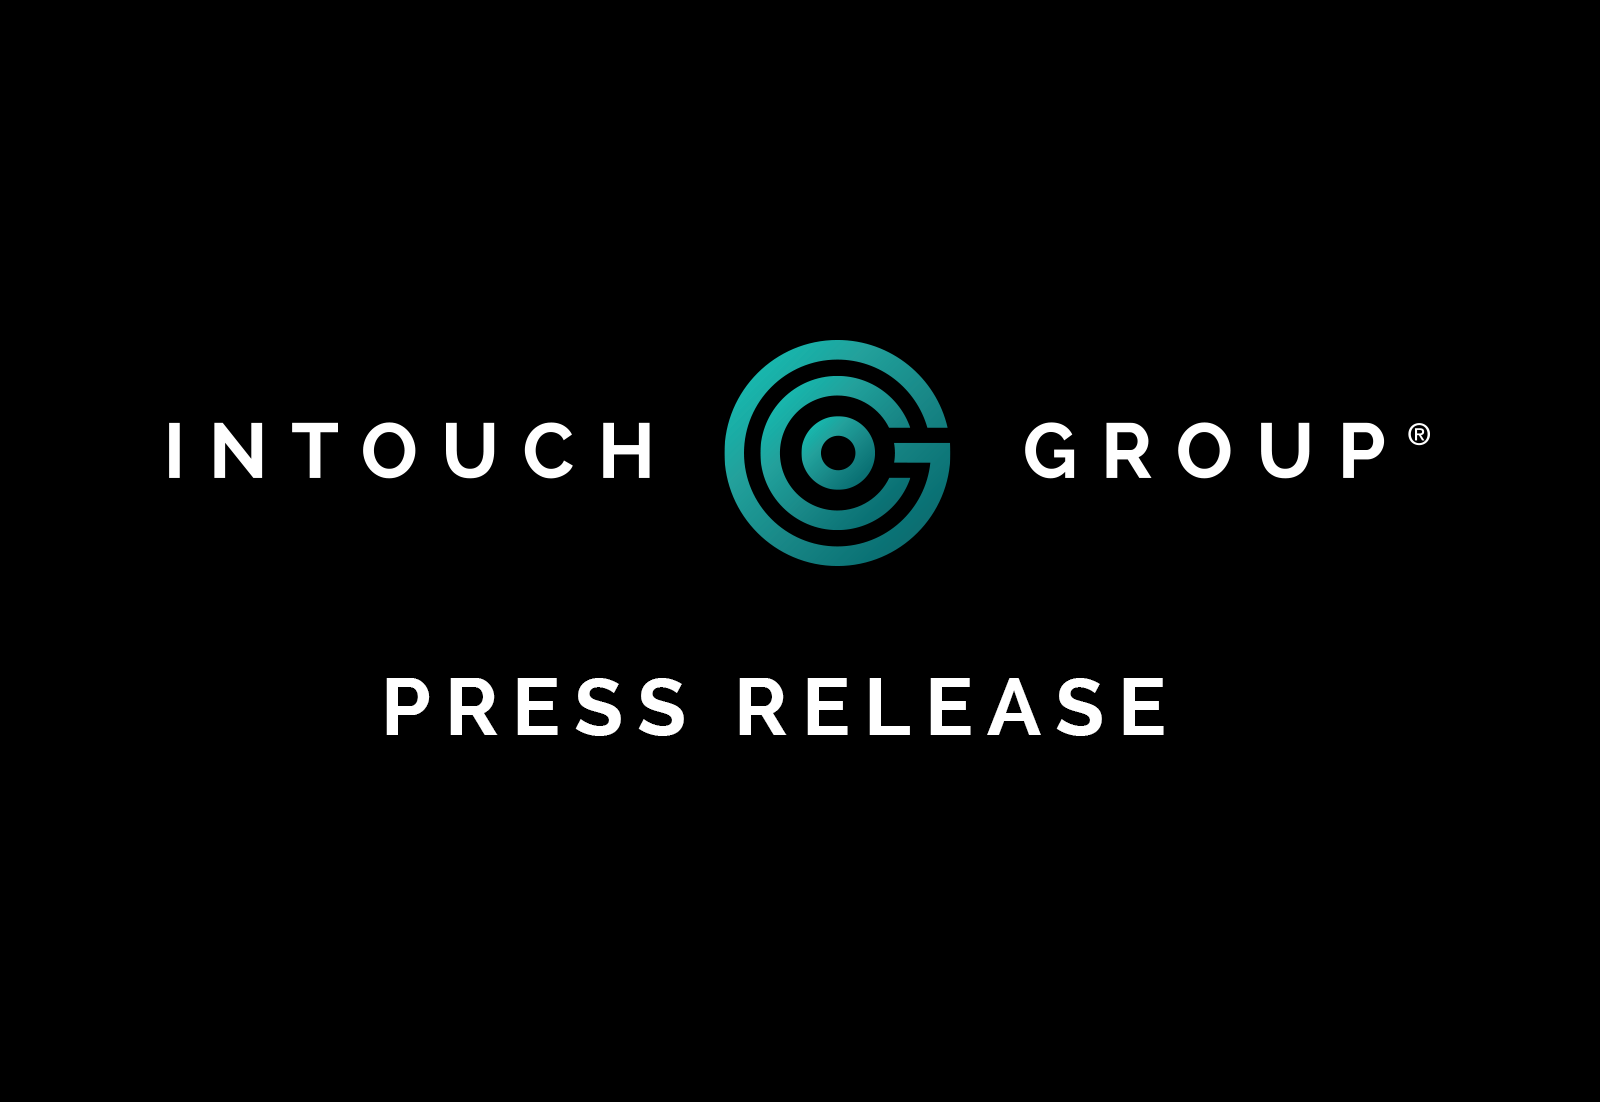 Intouch Group Takes Home Two Awards At Two Industry Award Ceremonies